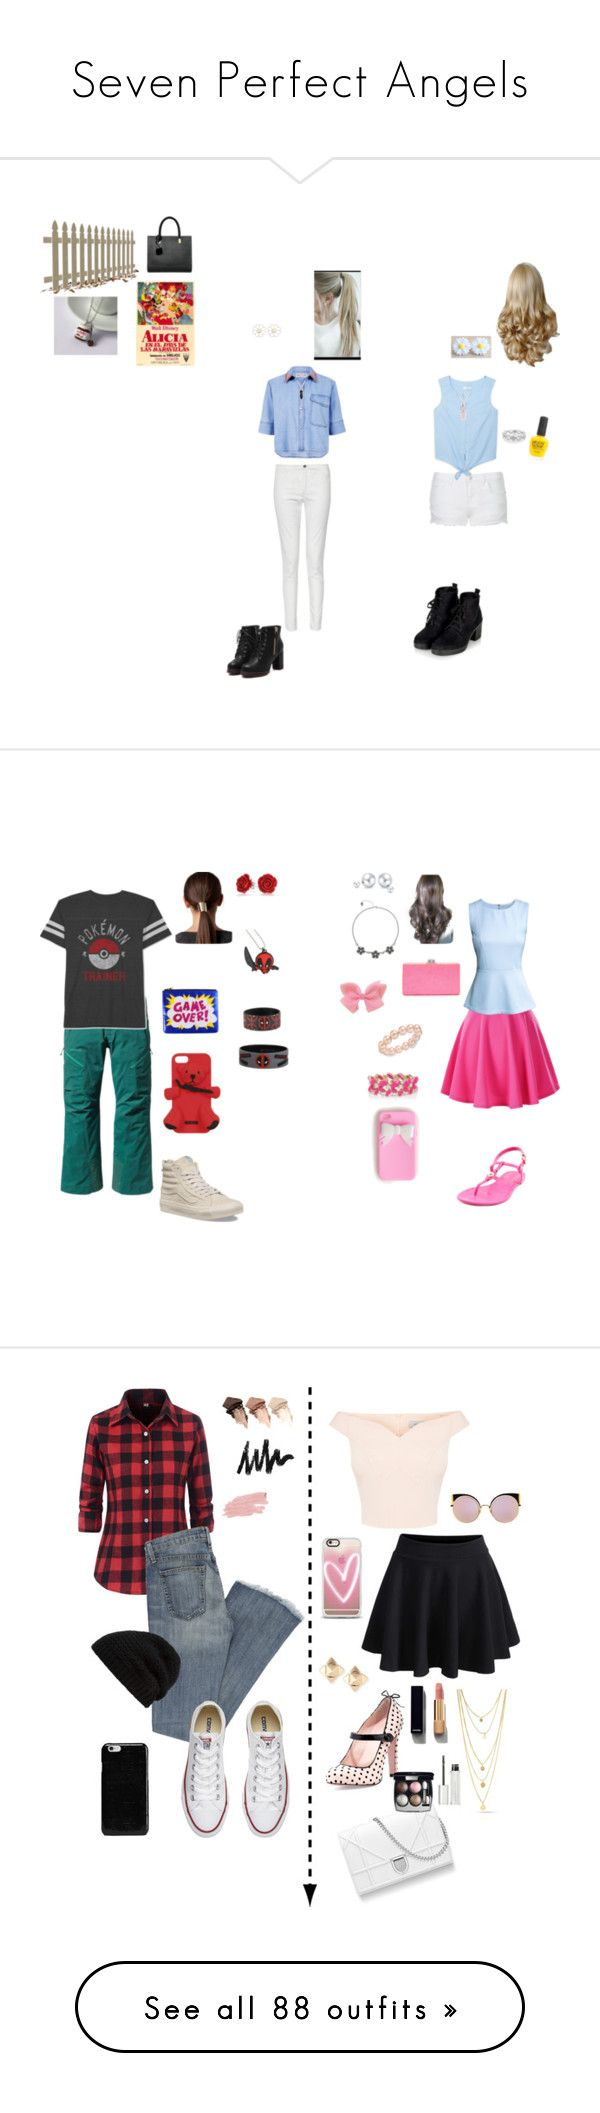 """Seven Perfect Angels"" by sierra-ivy on Polyvore featuring Topshop, Être Cécile, MANGO, Bling Jewelry, French Connection, Cheap Monday, Piggy Polish, megswag, Patagonia and JEM"